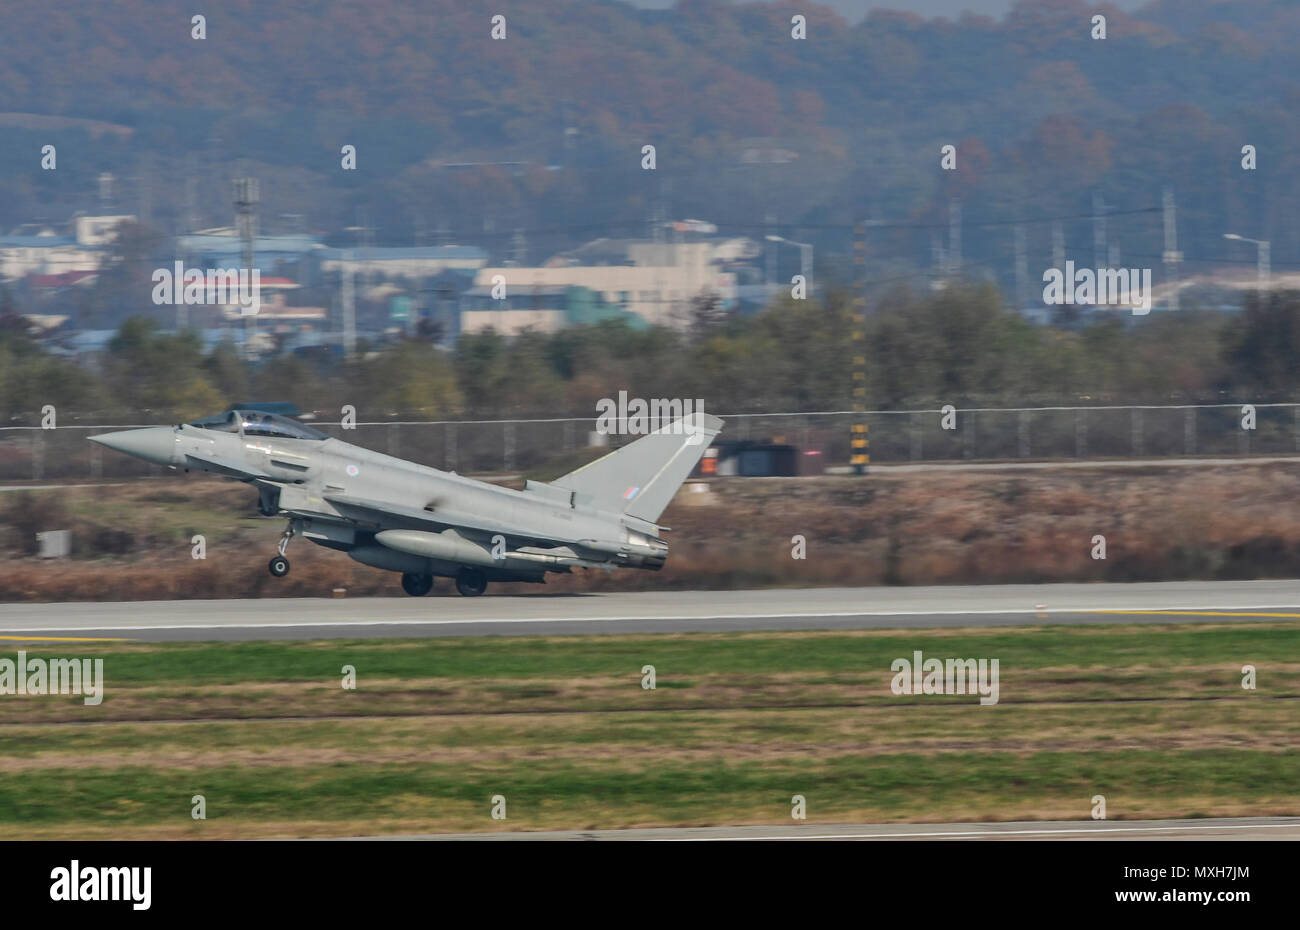 A Royal Air Force Eurofighter Typhoon FRG4, U.S. Air Force F-16 Fighting Falcon, and a Republic of Korea air force F-16 and F-15K Slam Eagle fly in formation during Invincible Shield on Osan Air Base, Republic of Korea, Nov. 8, 2016. The intent of Invincible Shield is to bolster the interoperability between the RoK, the U.S. and United Kingdom while improving combat capability in the Pacific region. (U.S. Air Force photo by Tech. Sgt. Rasheen Douglas) - Stock Image